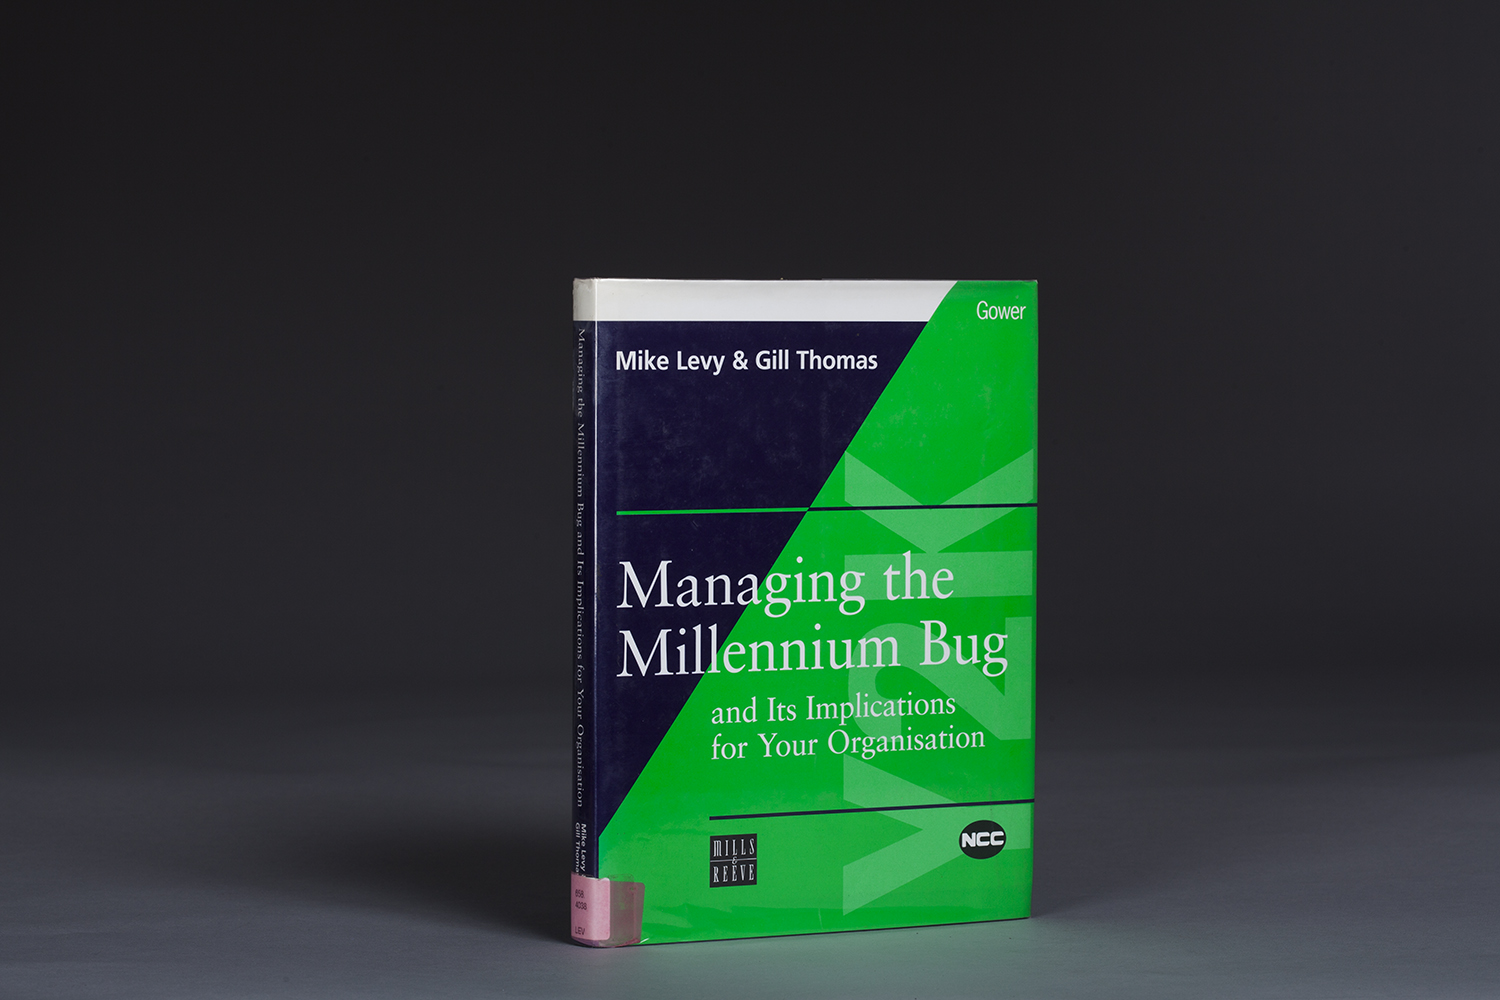 Managing the Millennium Bug and Its Implications for Your Organisation - 0006 Cover.jpg